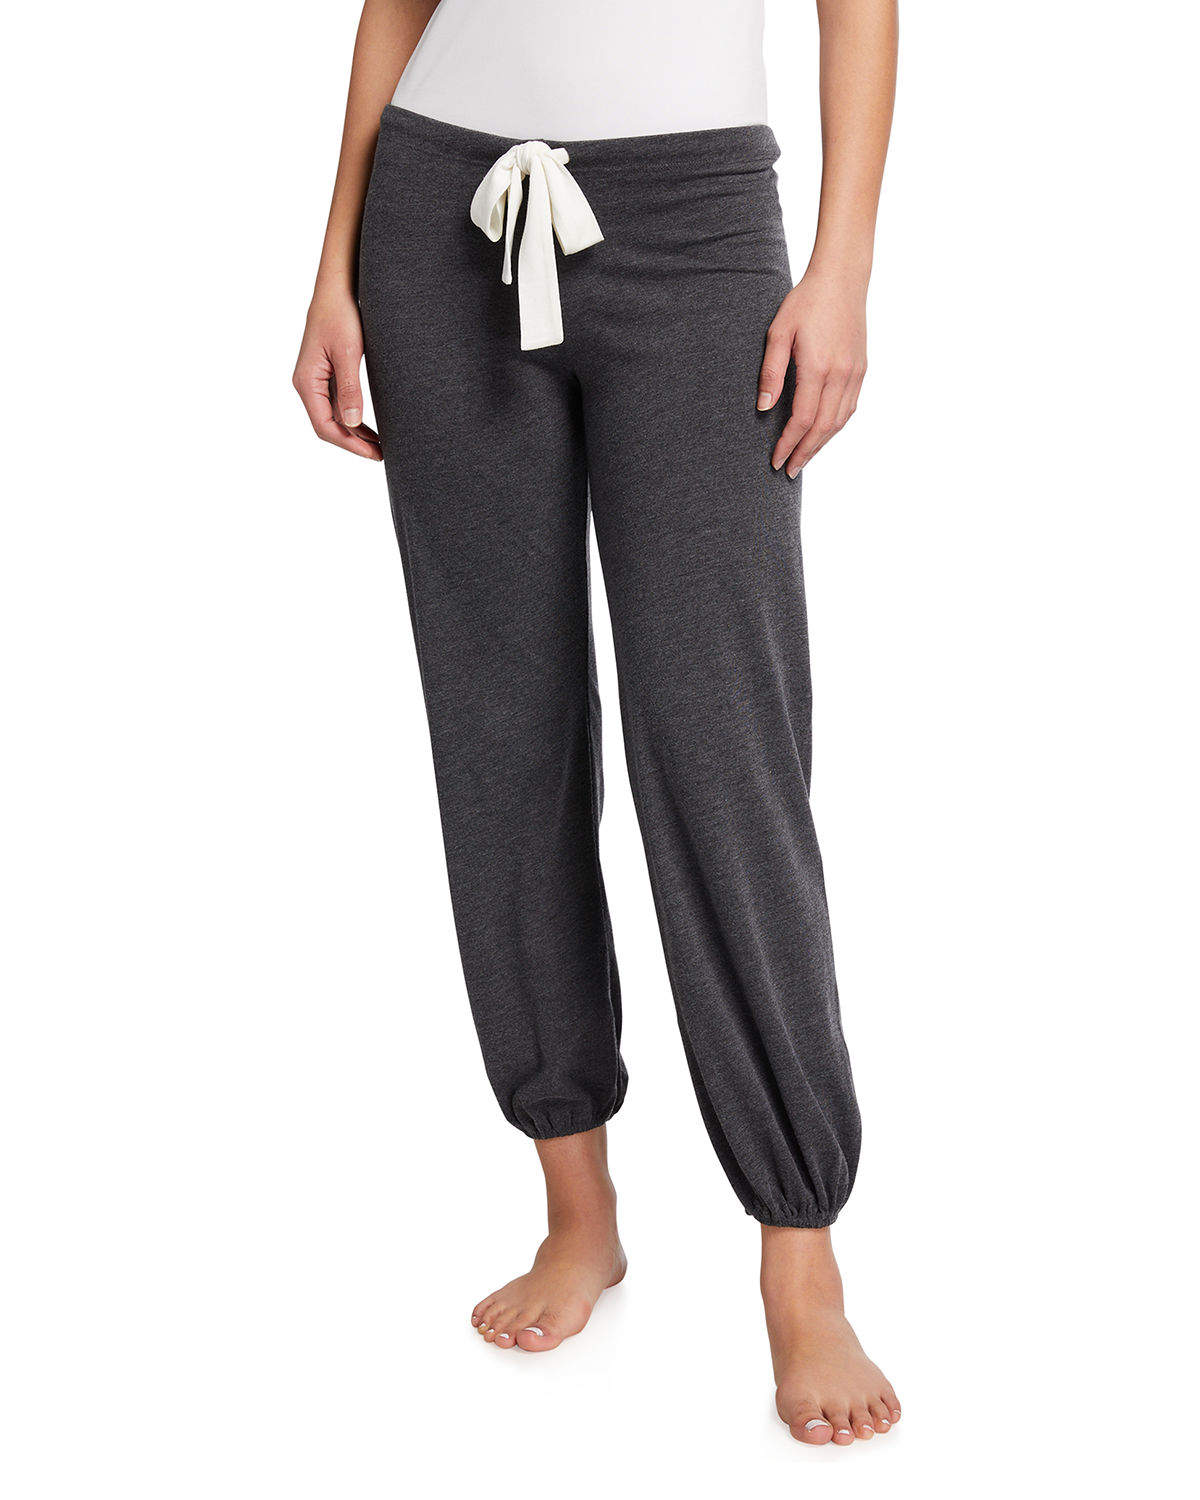 Eberjey Heather Slouchy Lounge Pants In Charcoal